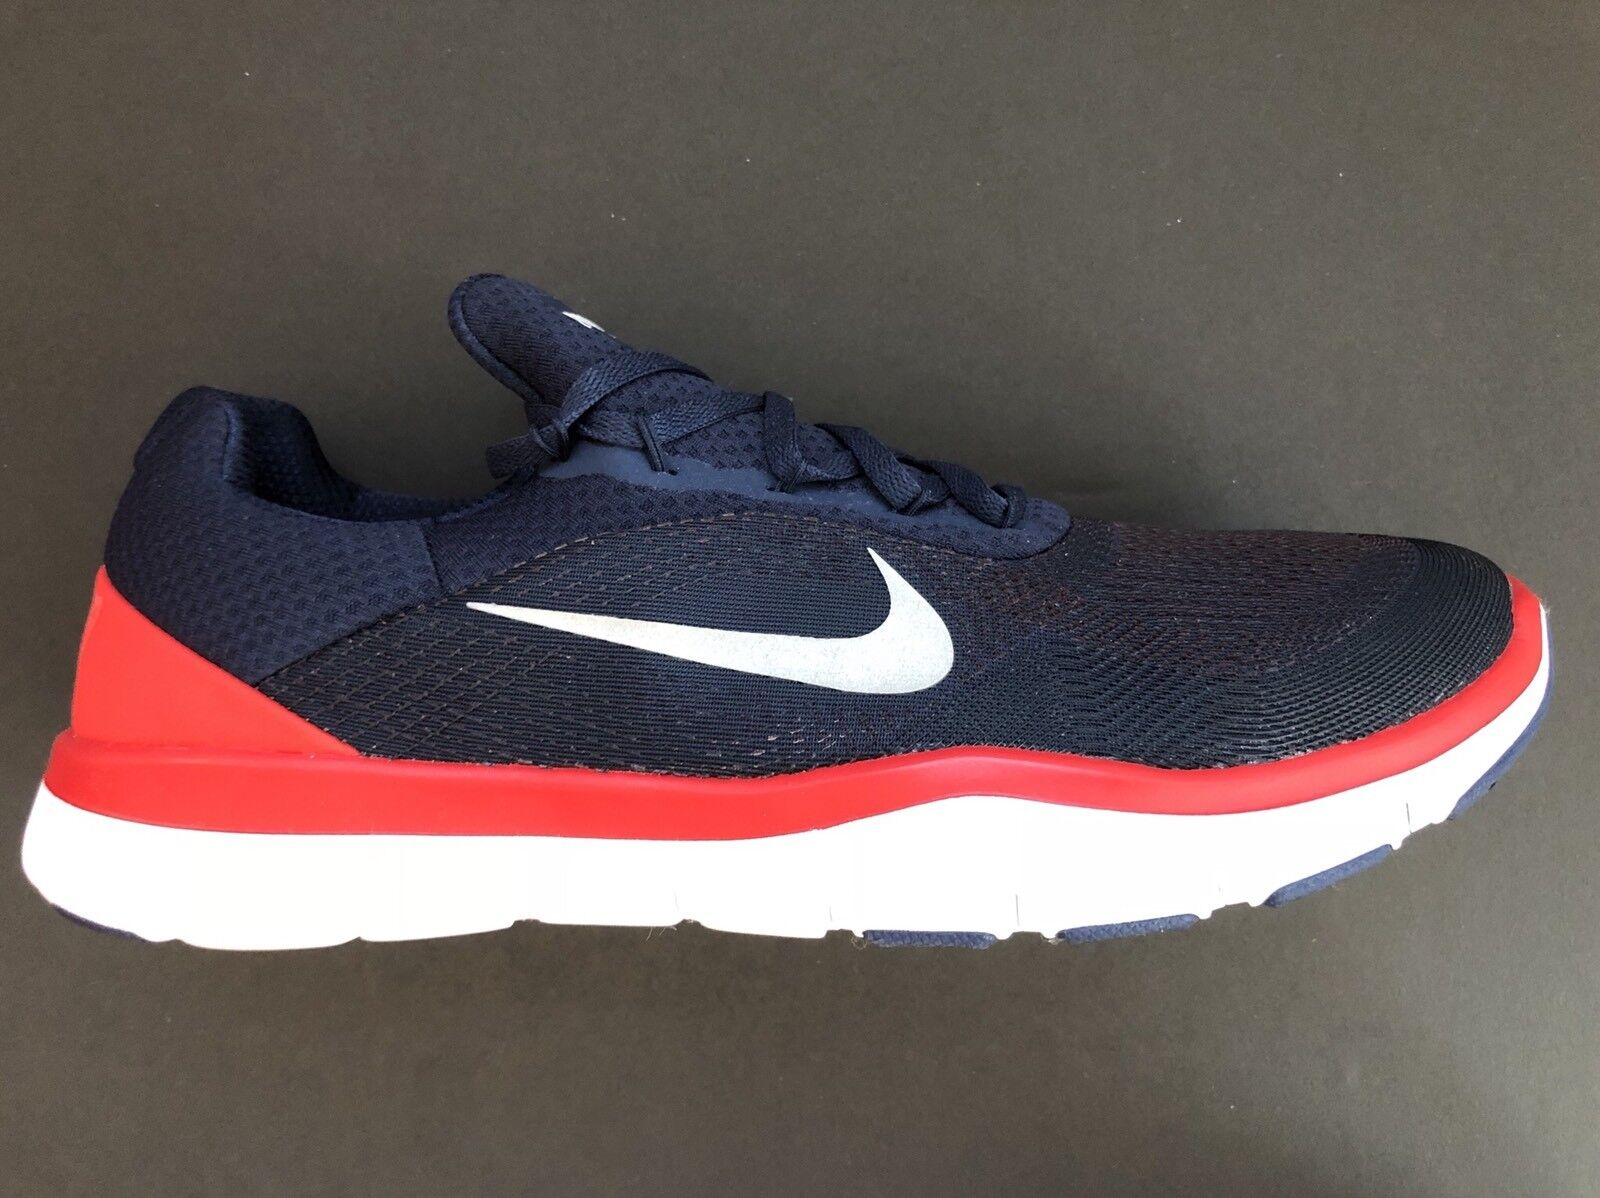 Nike New England Patriots Free Trainer V7 Ltd Edition Shoes AA1948-404 Size 11.5